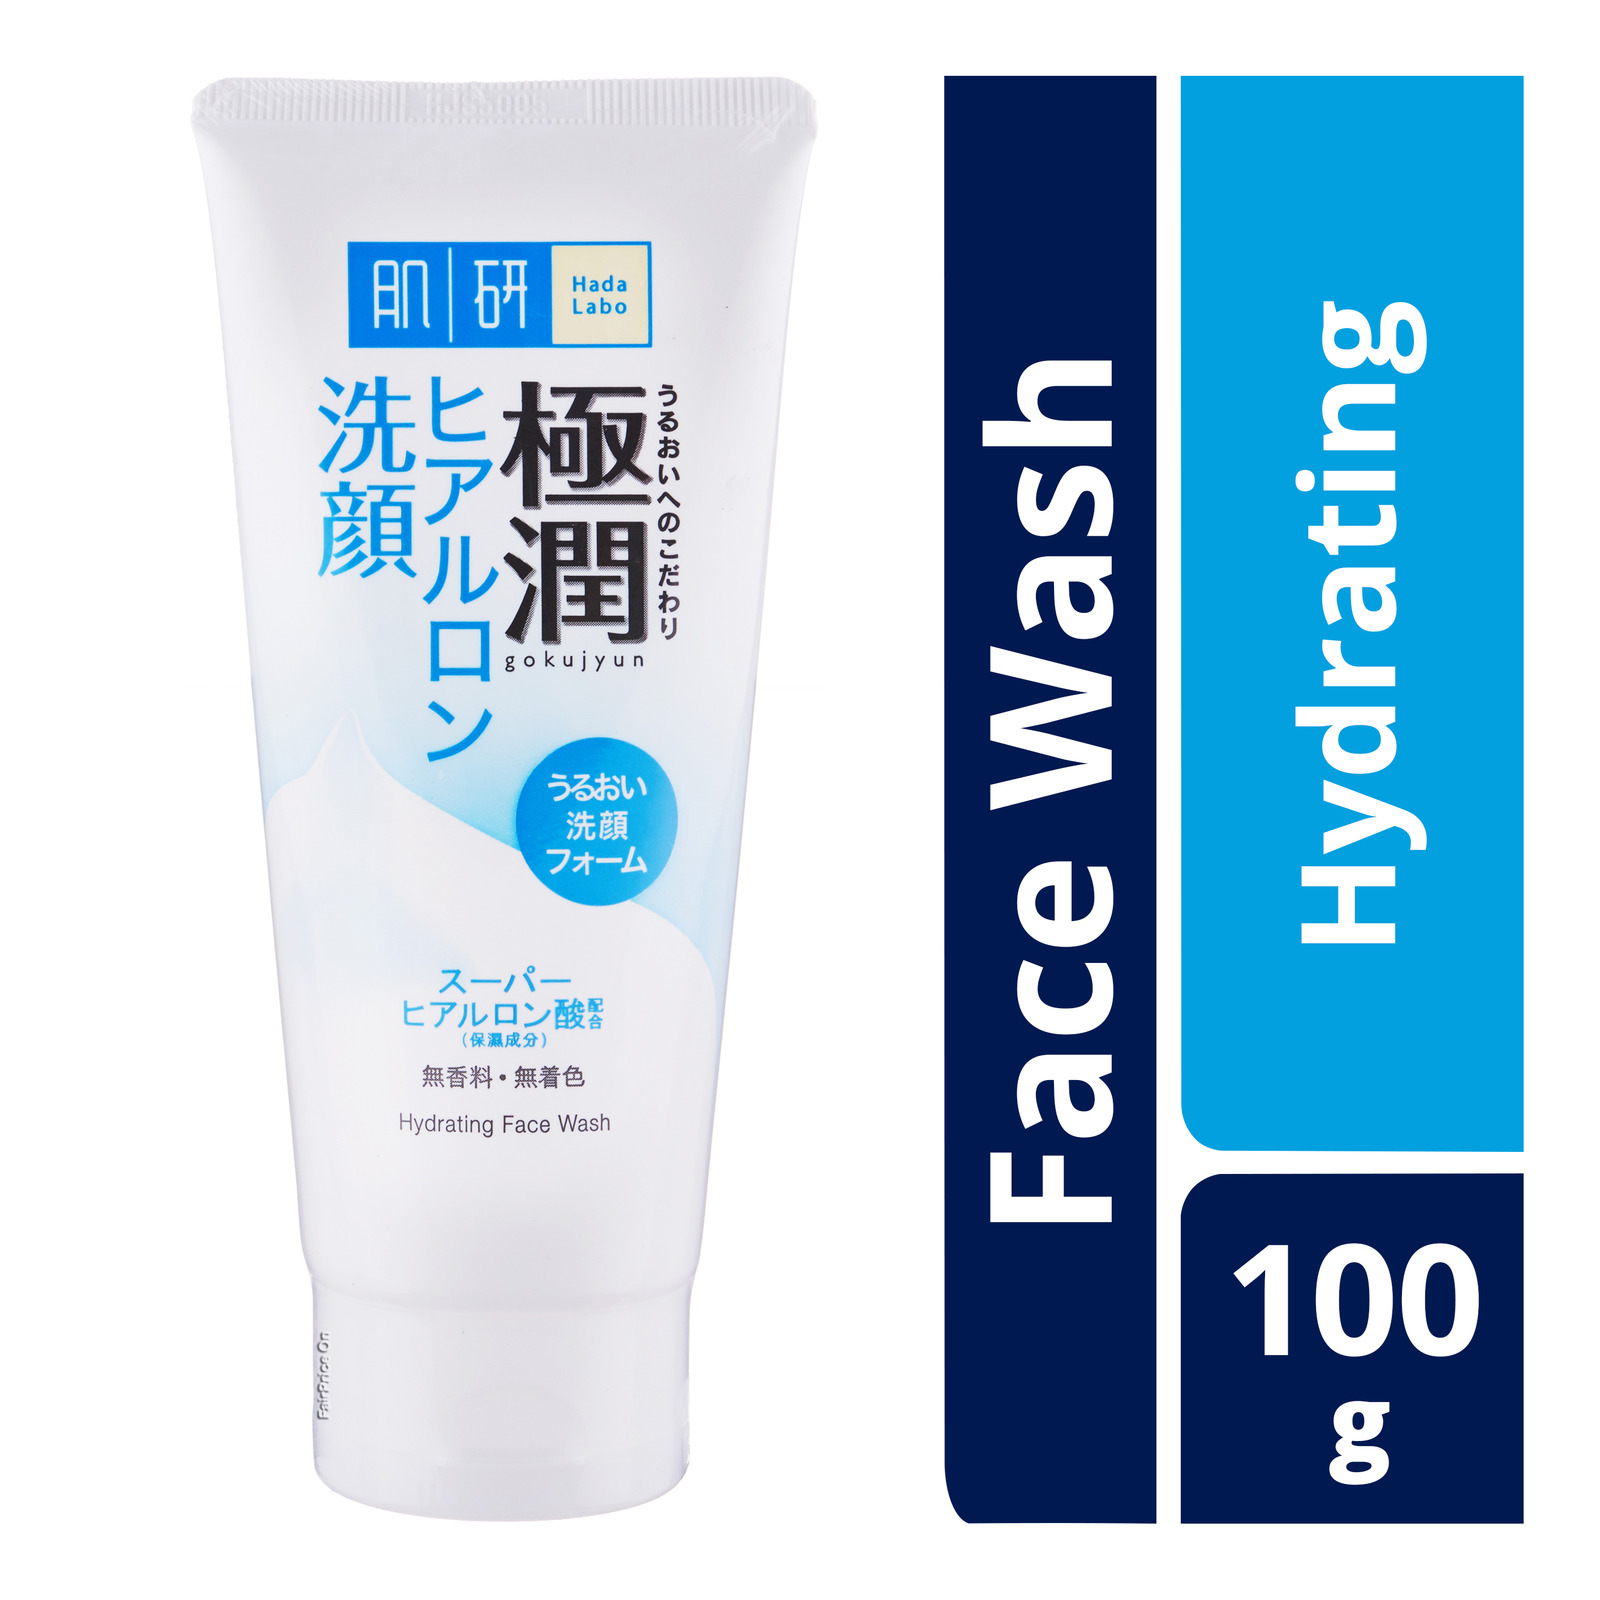 Hada Labo Face Wash - Hydrating